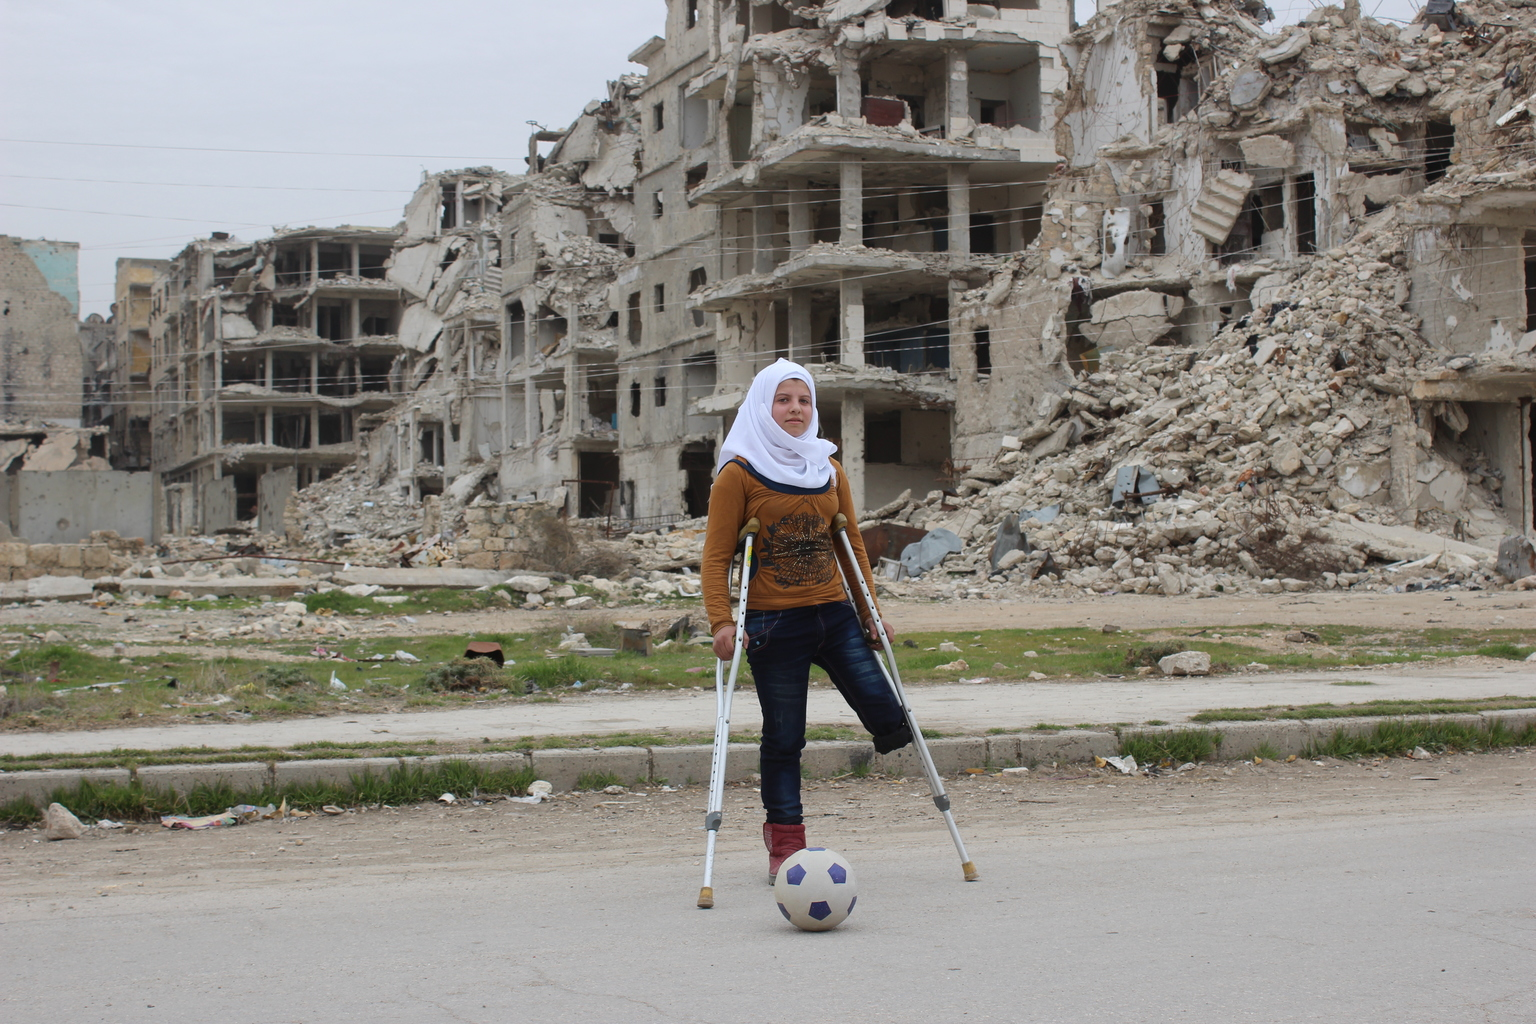 A girl with only one leg stands on crutches in front of a bombed out building